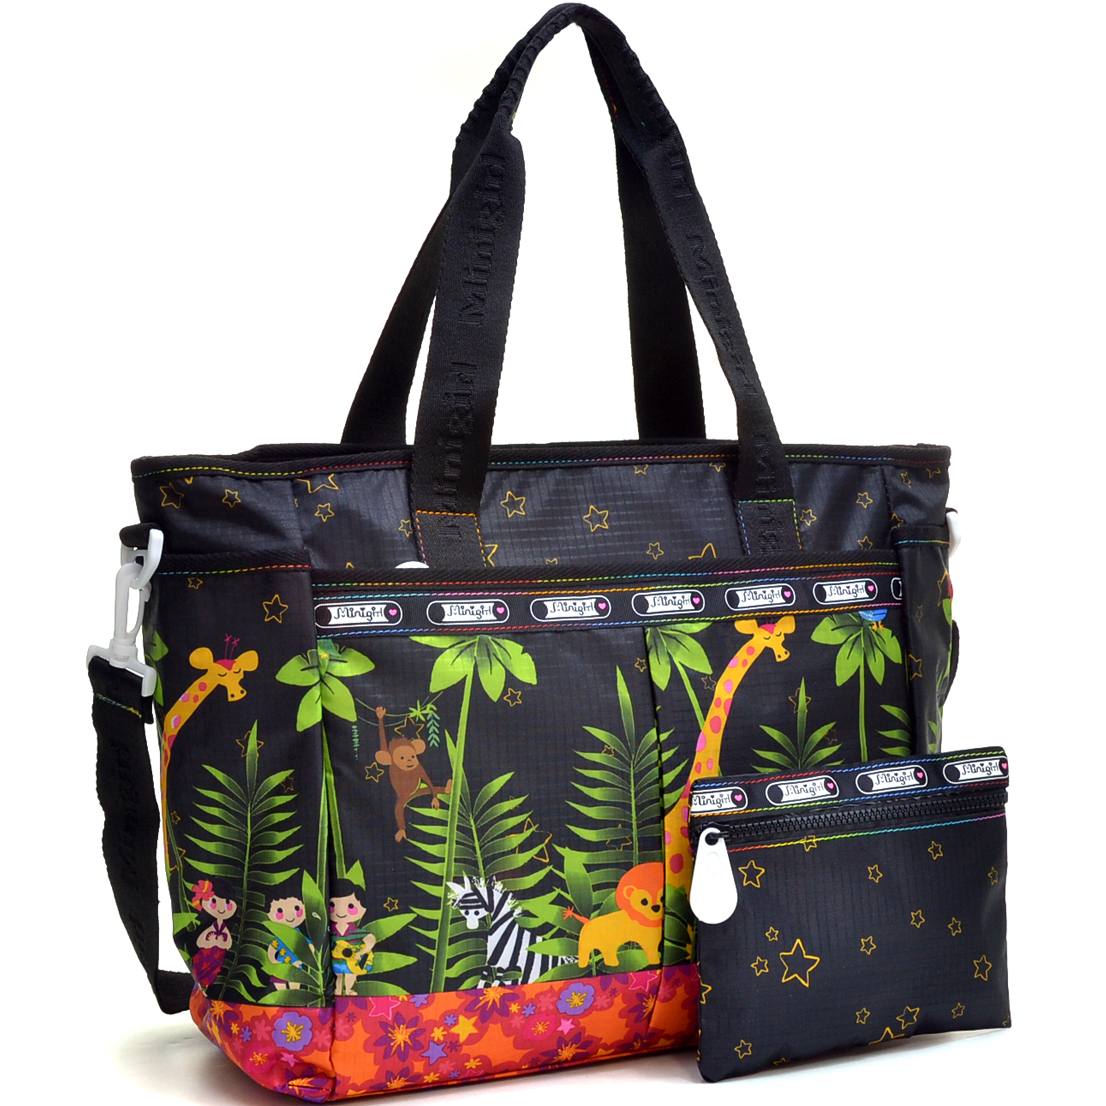 Nylon Fun Print Design Tote Bag with Shoulder Strap